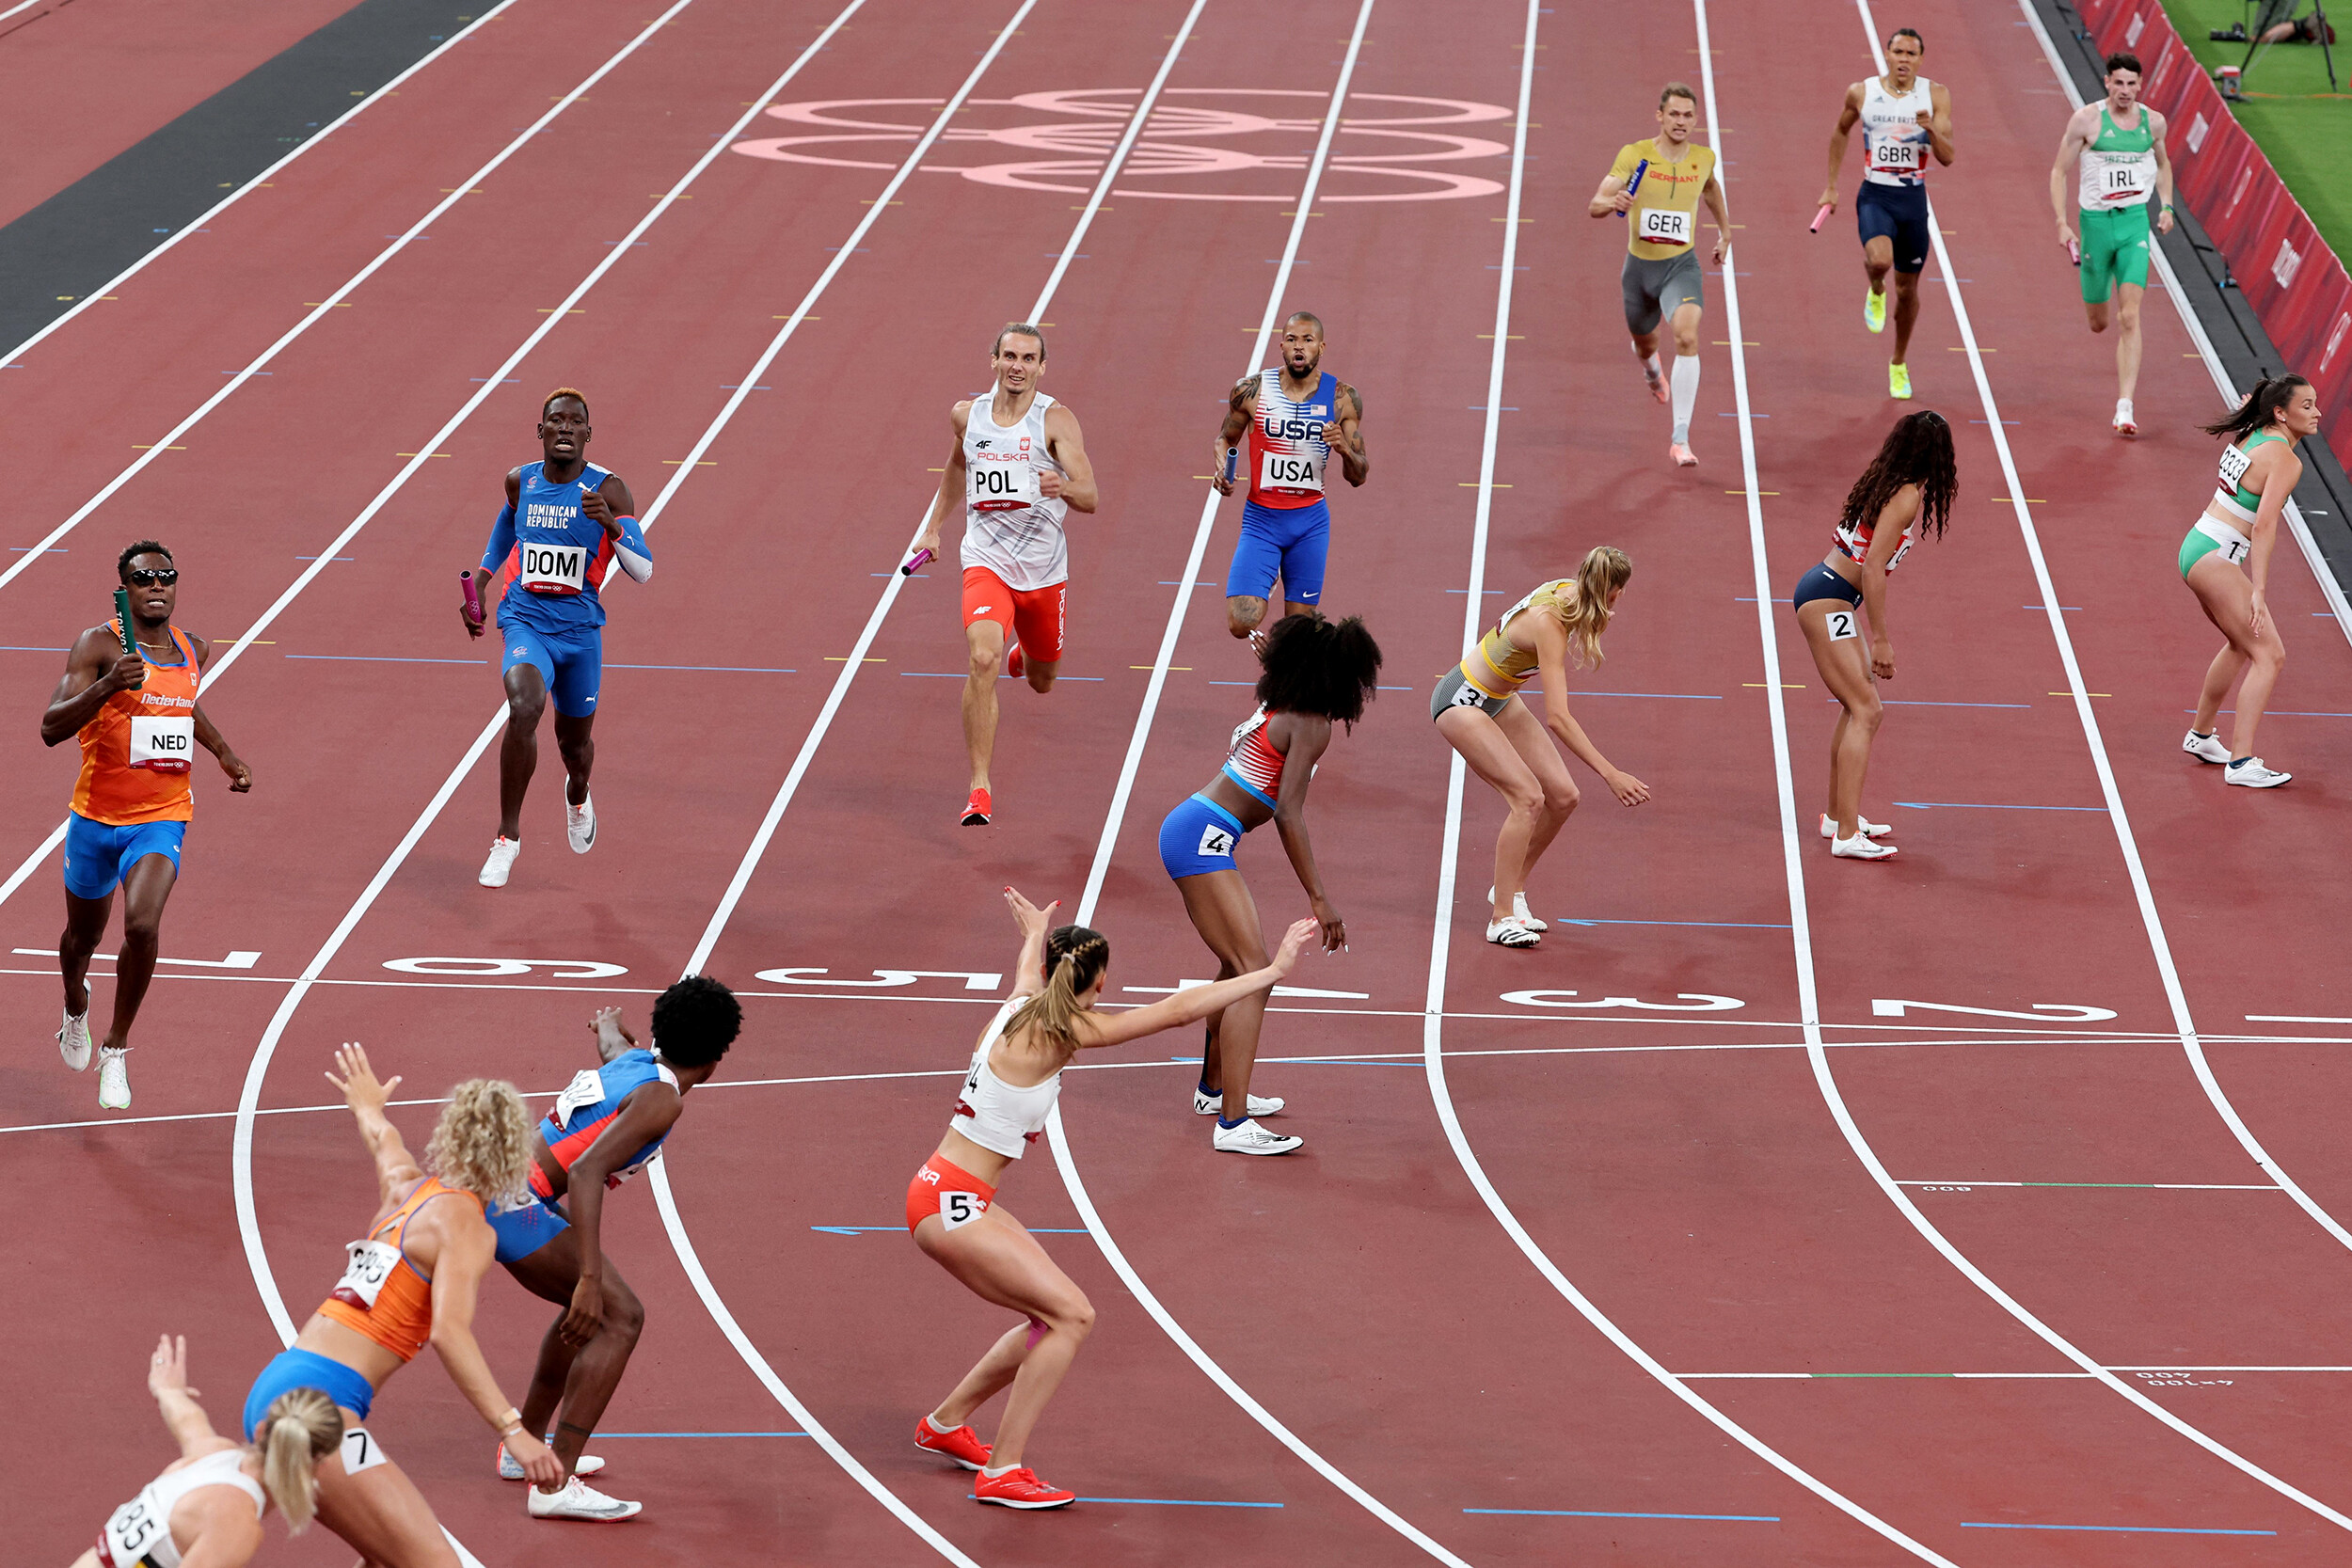 Ponytails and smiles: Pervasive language keeps sexism in Olympic sport at play